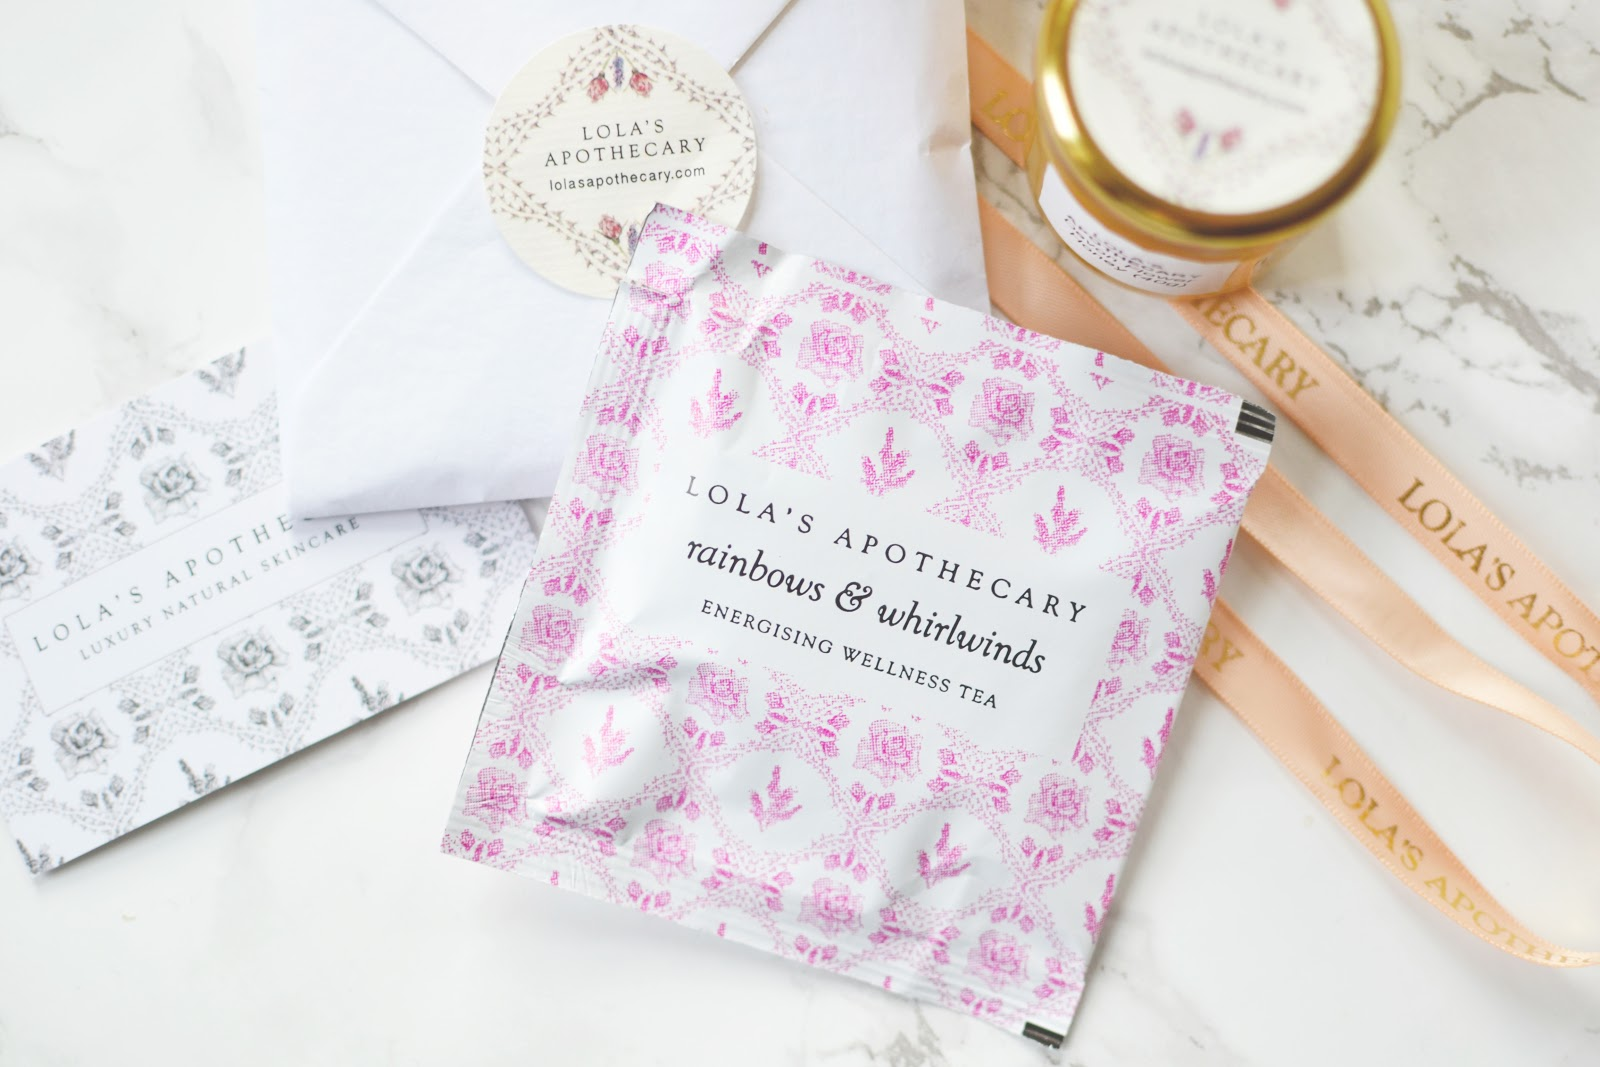 lola's apothecary wellbeing tea